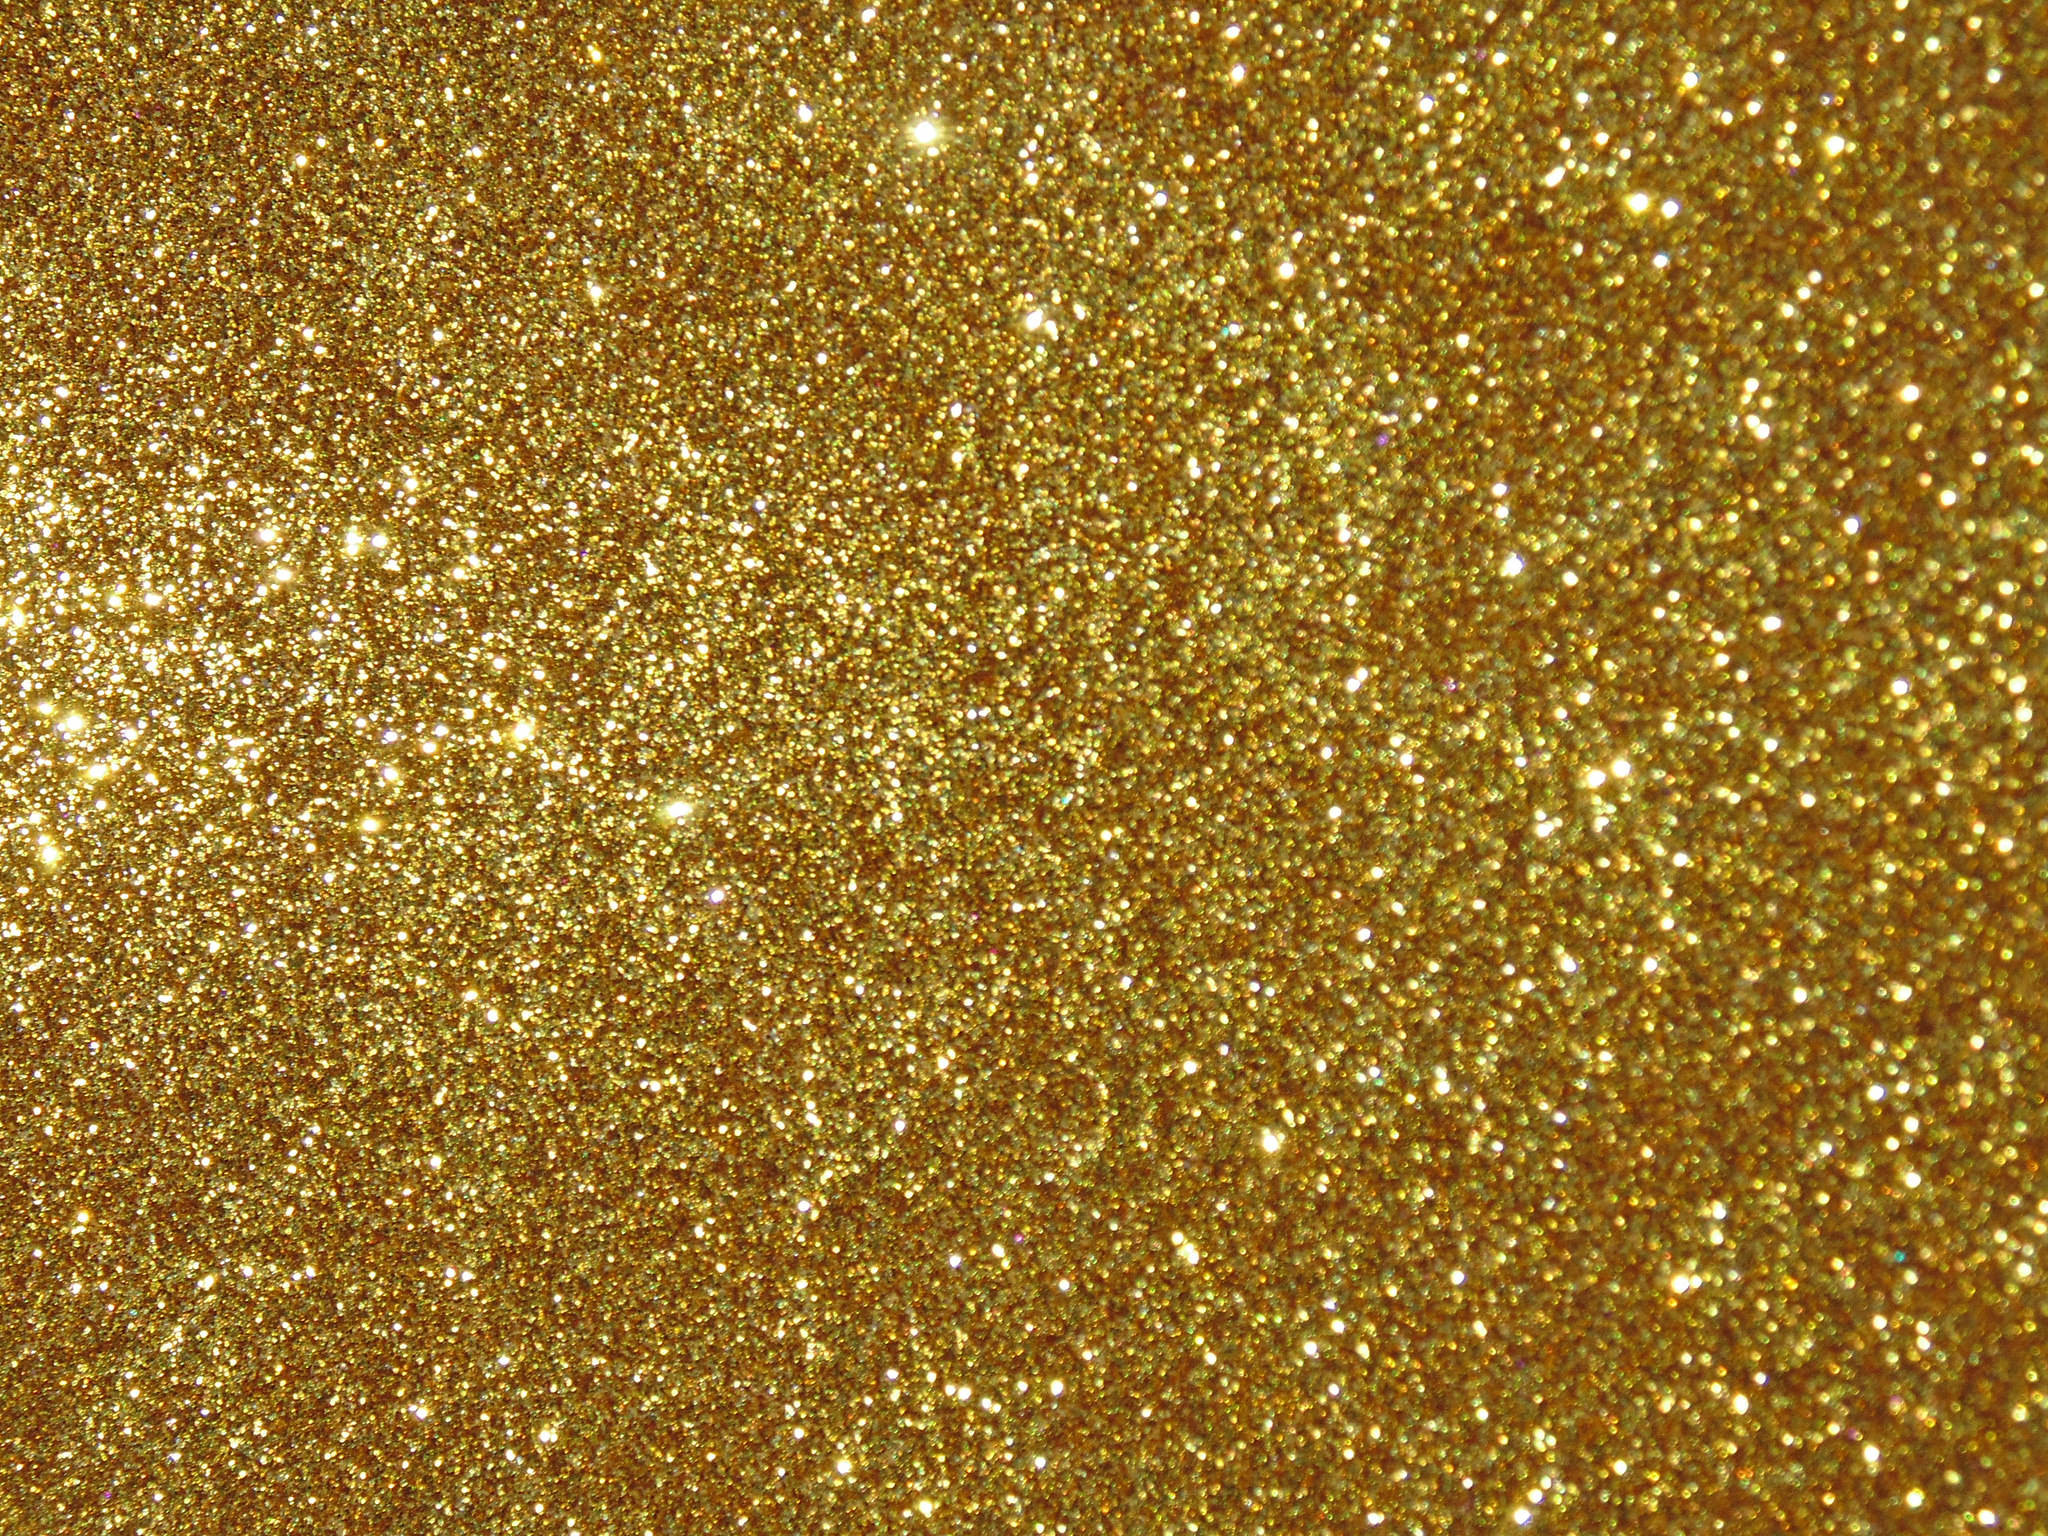 2048x1536 Gold Glitter Wallpaper HD | HD Wallpapers, Backgrounds, Images .